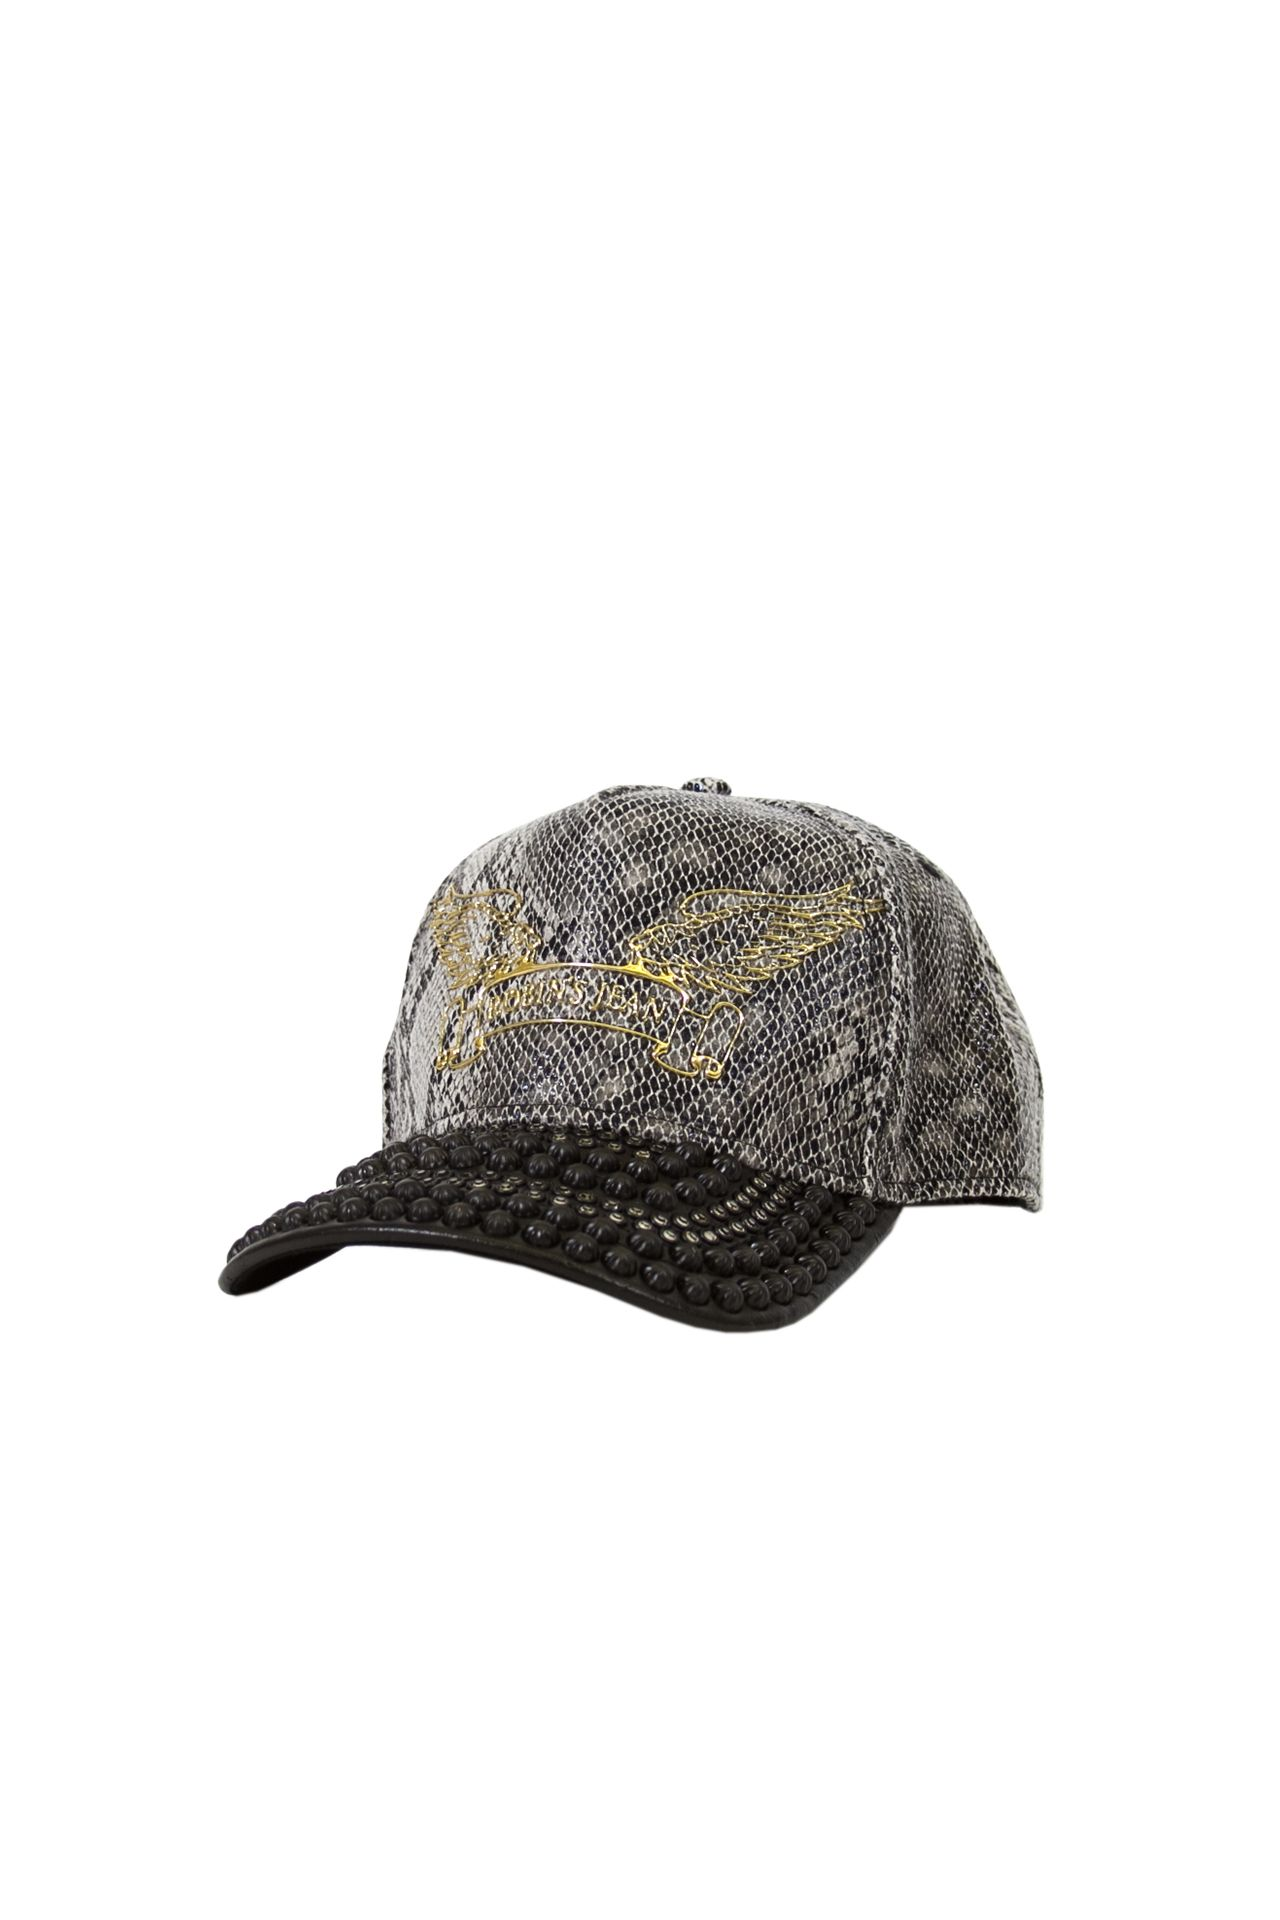 TEXTURED SNAKE CAP WITH LEATHER LOOK BILL STUDDED